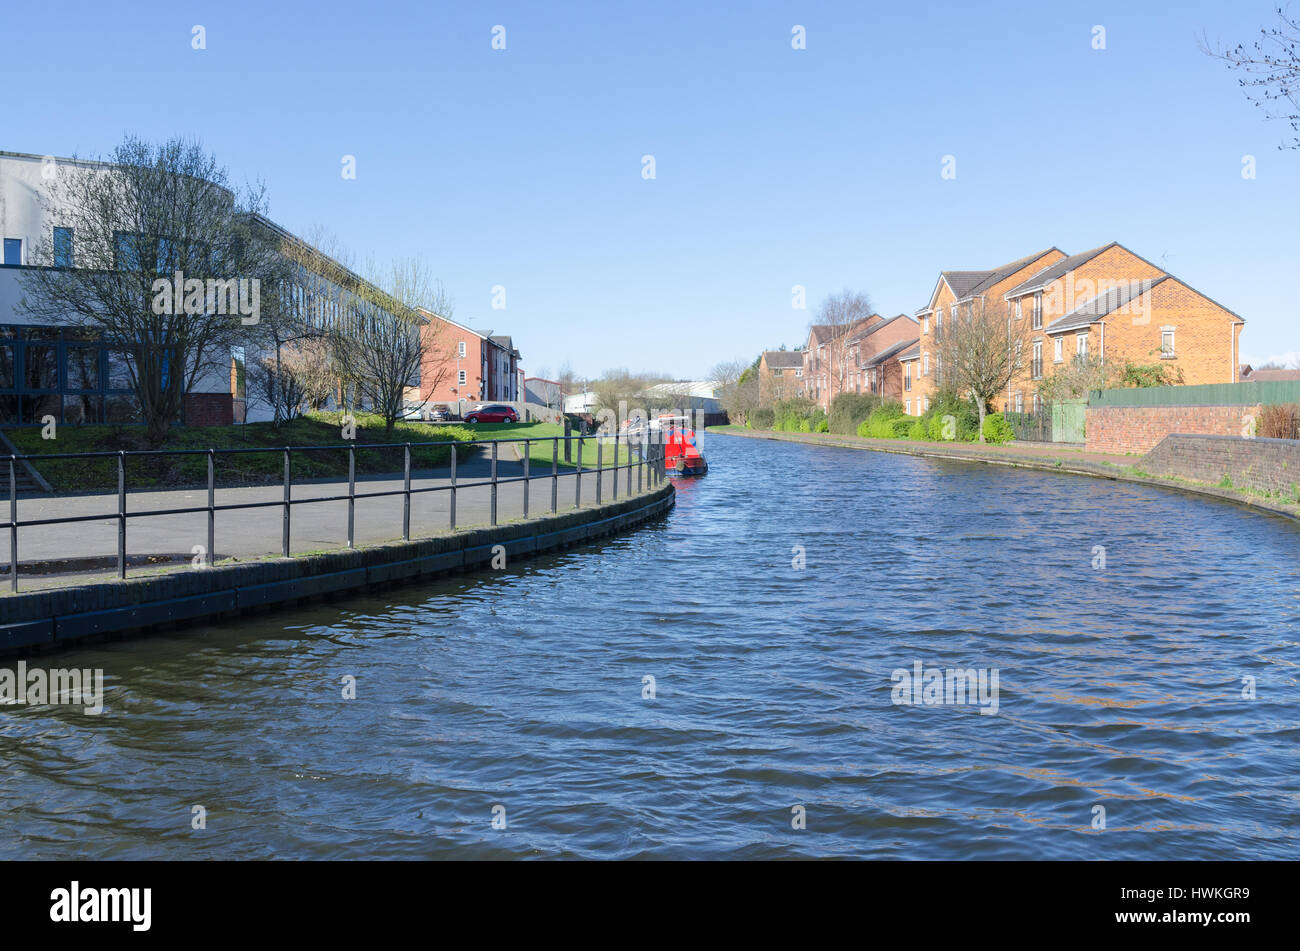 Waterside living on the Birmingham Canal running through Tipton near Dudley in the Black Country - Stock Image